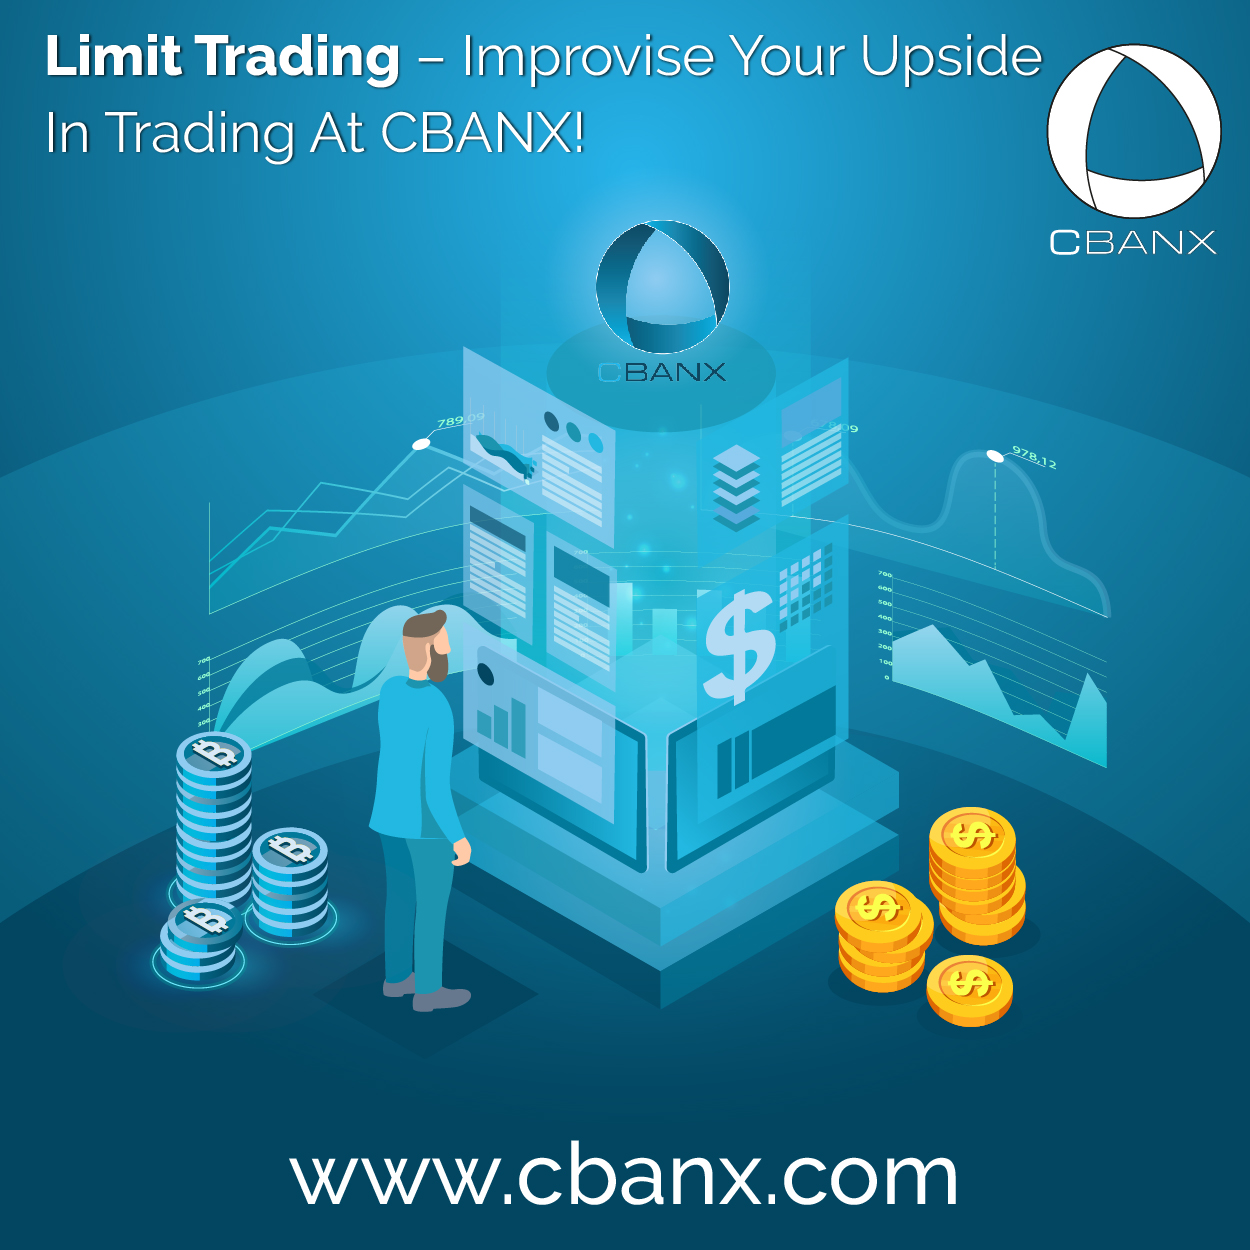 Limit Trading – Improvise Your Upside In Trading At CBANX!